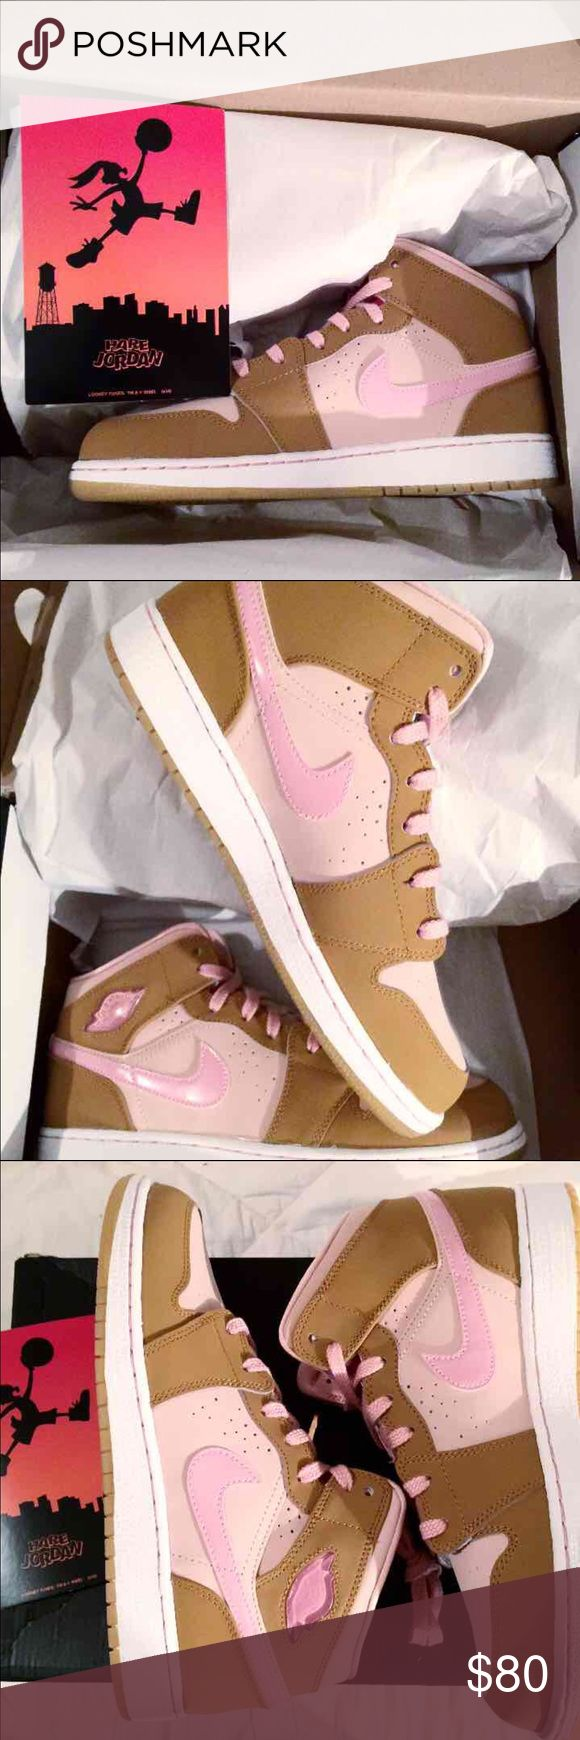 Nike Air Jordan Retro 1 Air Jordan Retro 1 Mid Lola Bunny Includes og box Never worn  CHECK OUT MY OTHER LISTINGS :) Nike Shoes Sneakers